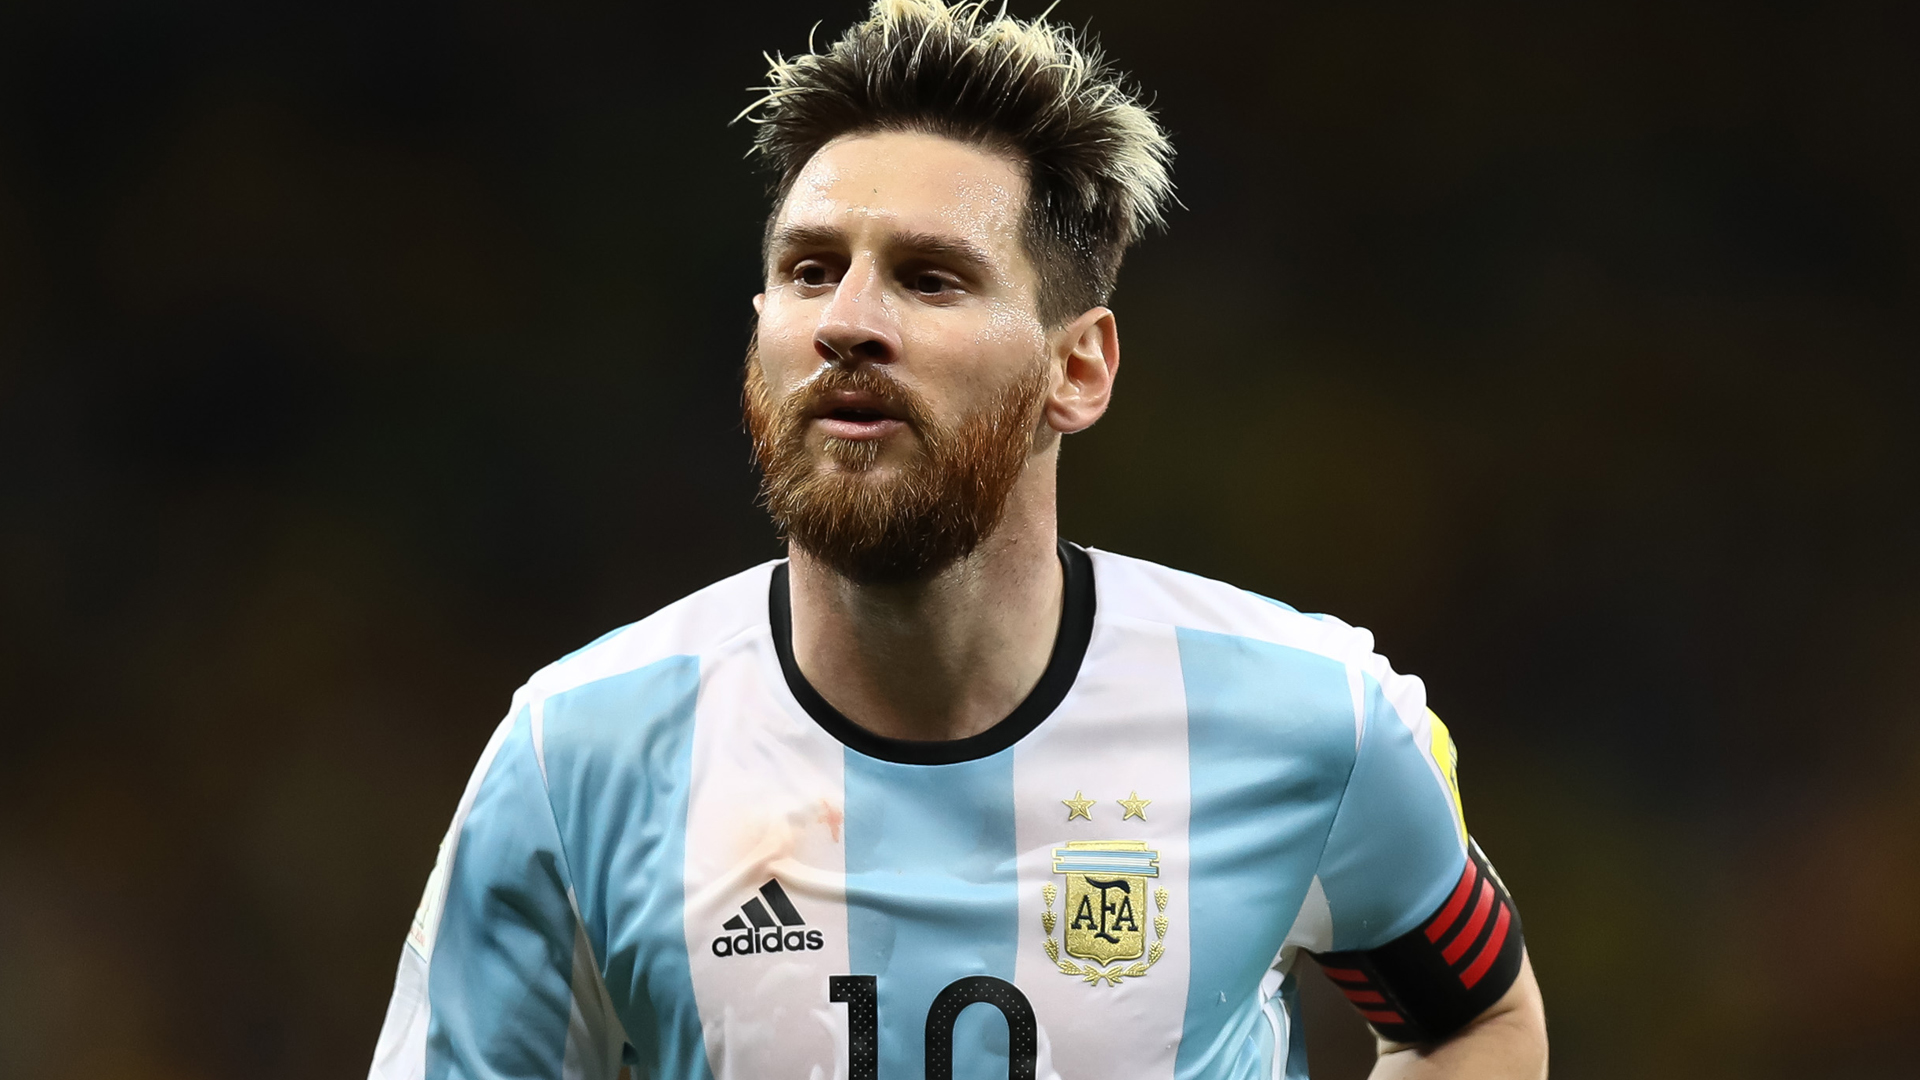 Sampaoli keen to build around'very excited Messi in Argentina team